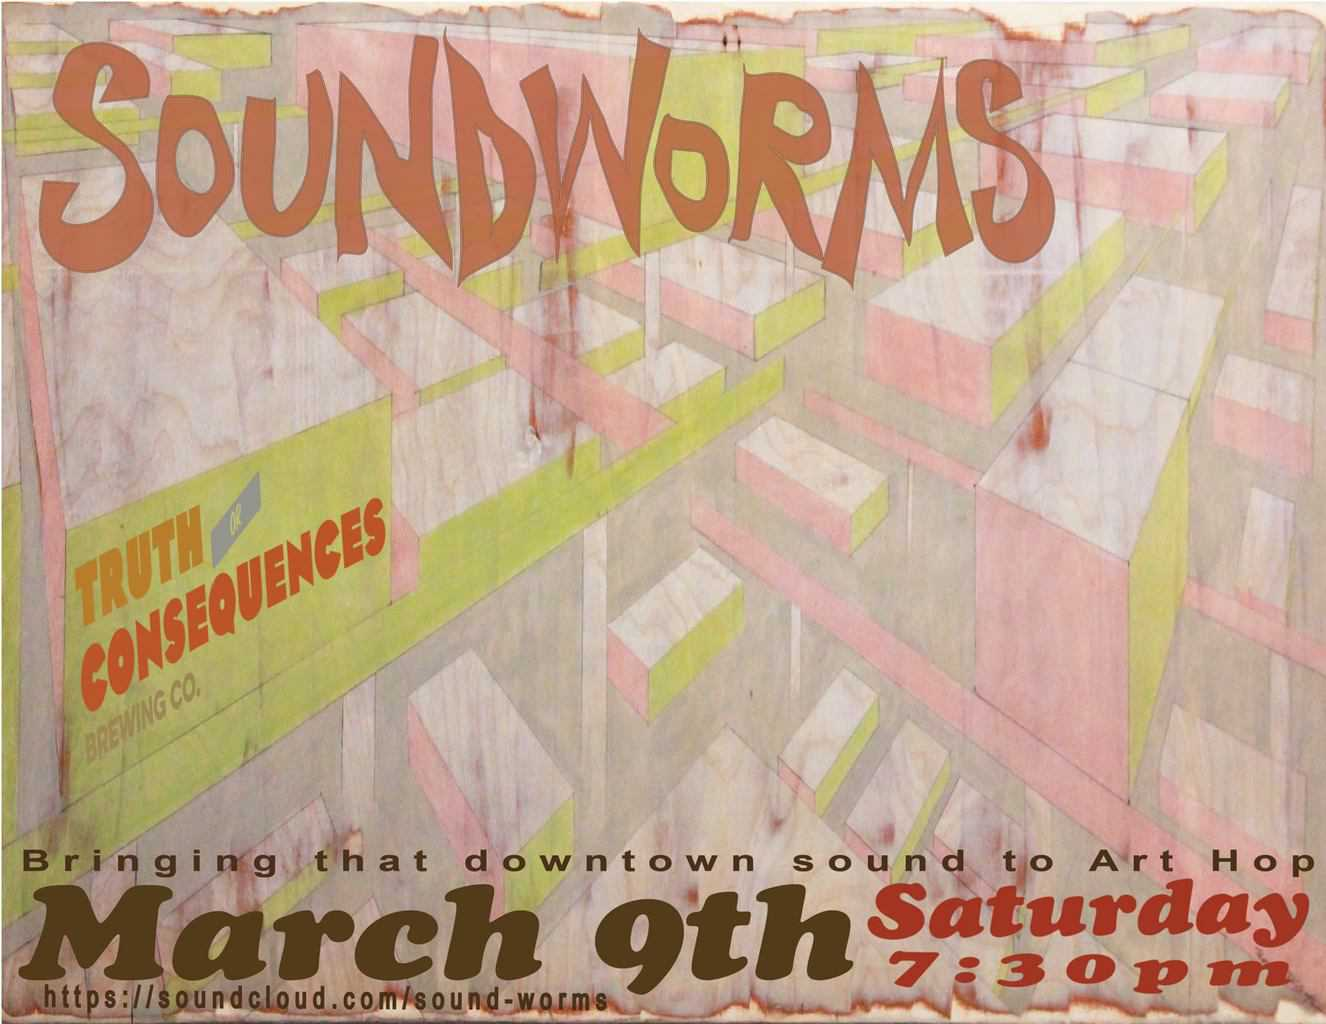 Soundworms